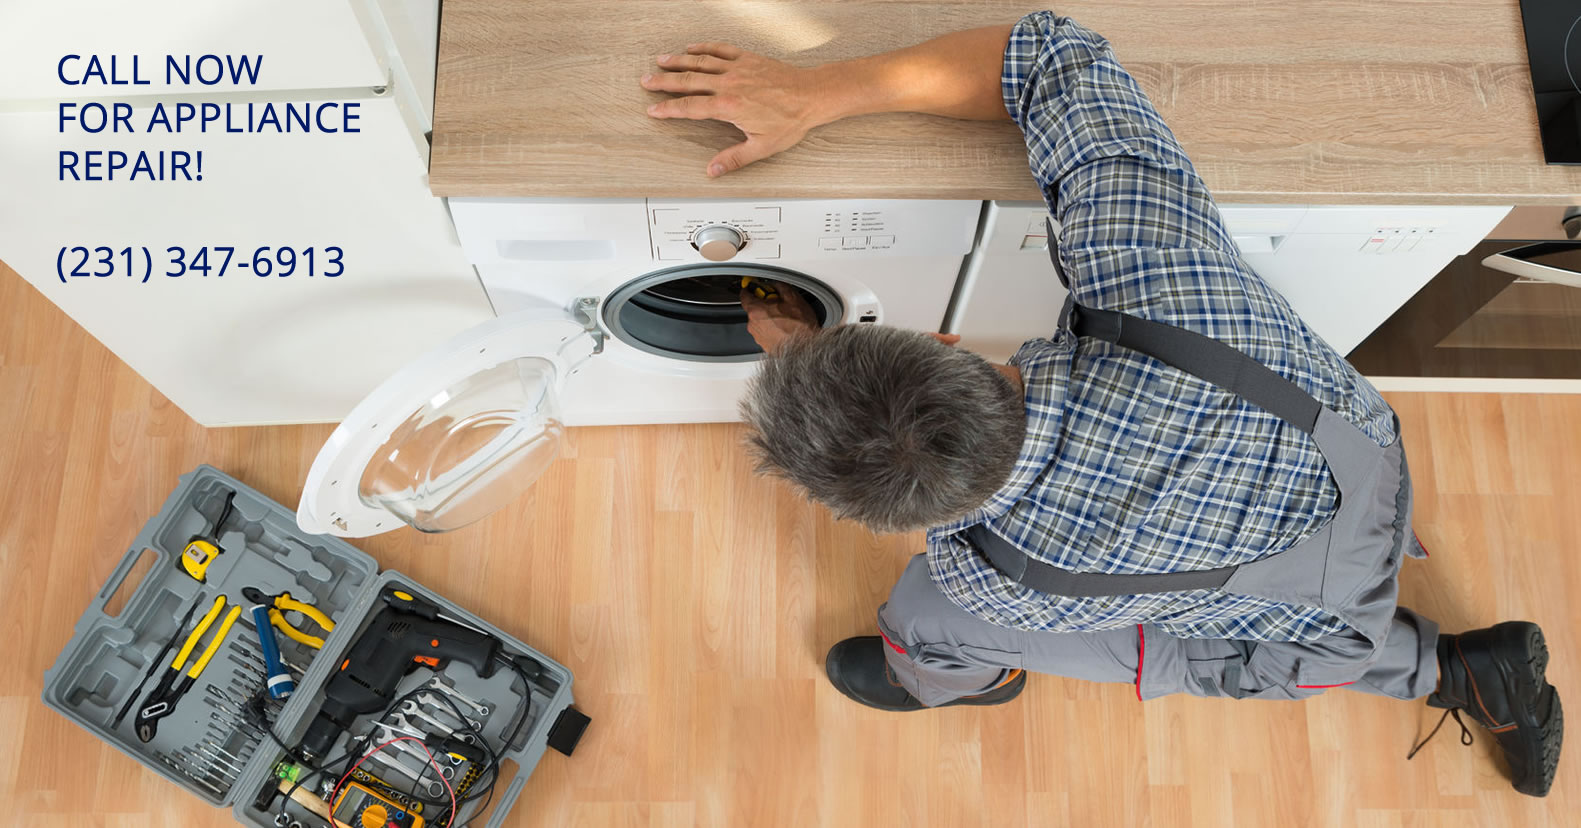 Tri-Lakes Appliance Repair